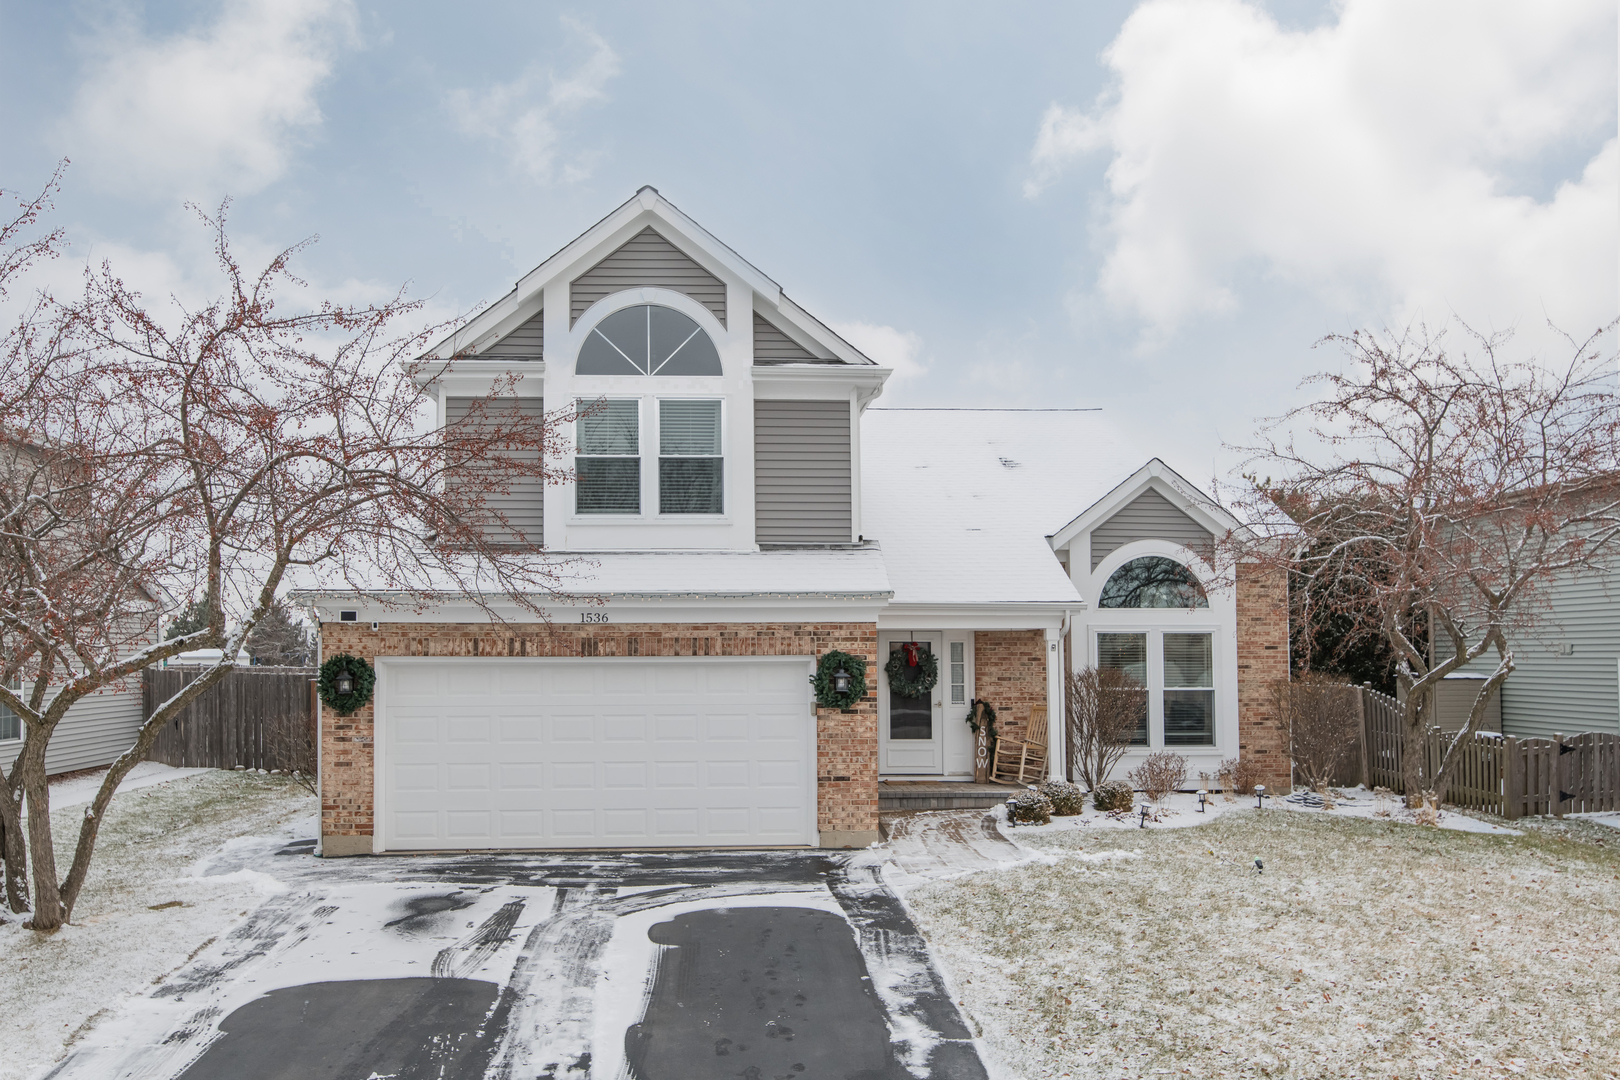 Photo for 1536 Stockton Lane, Crystal Lake, IL 60014 (MLS # 10594655)